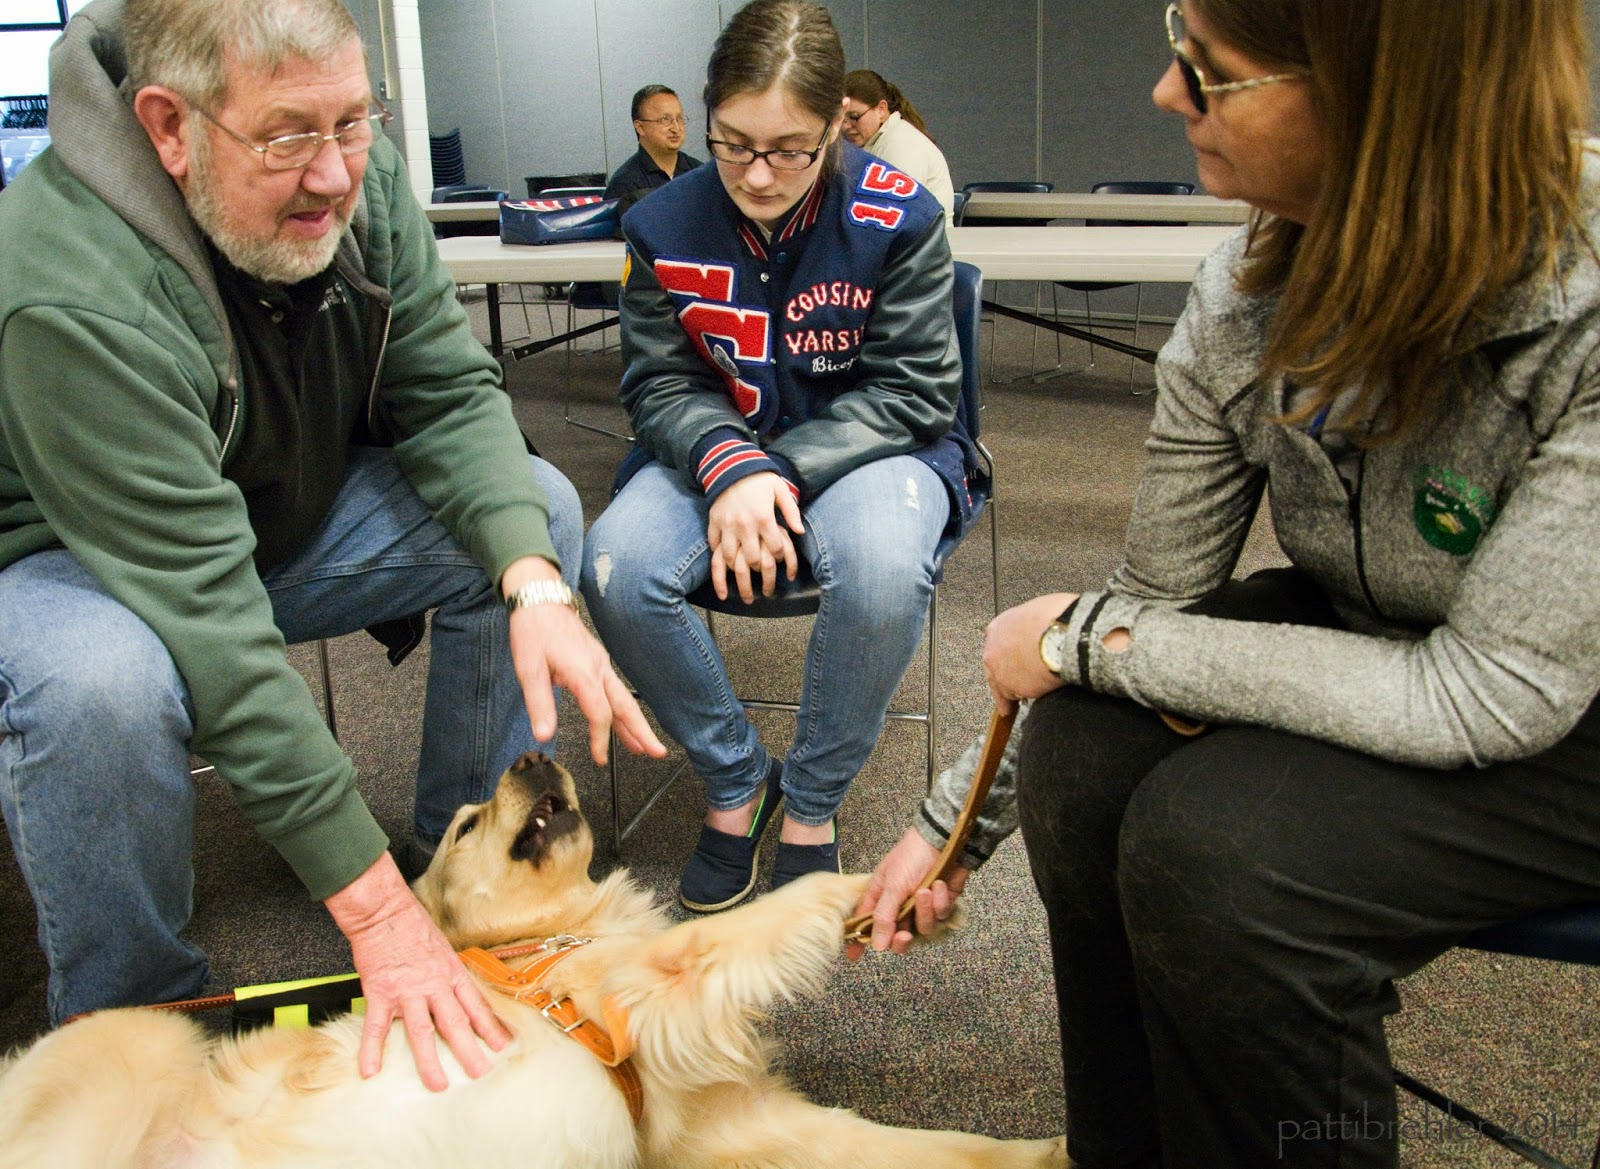 The man in the green sweatshirt is sitting on a chair on the left side, reaching to pet the golden retriever. The golden is lying on his side on the carpet, rolling over. Next to the man is a teenage girl with glasses and a varsity jacket and blue jeans. She is sitting in a chair looking down at the dog at her feet. On the right side is the woman with sunglasses wearing a grey shirt and black slacks. She is holding the dog's leash in her hands.